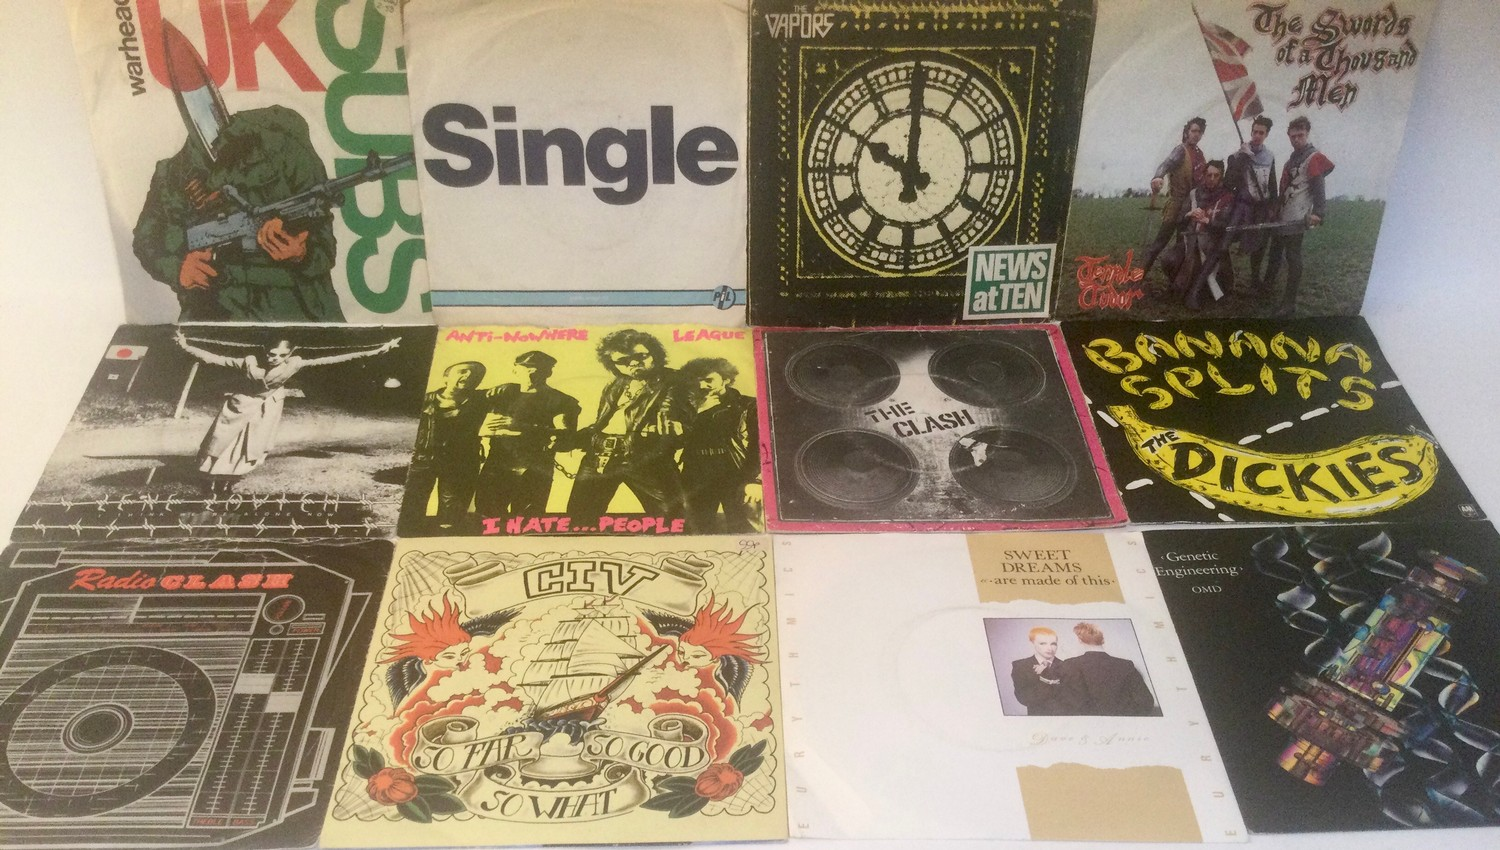 LARGE BOX OF VARIOUS 7? VINYL SINGLE RECORDS. Mainly found in VG+ conditions and containing many